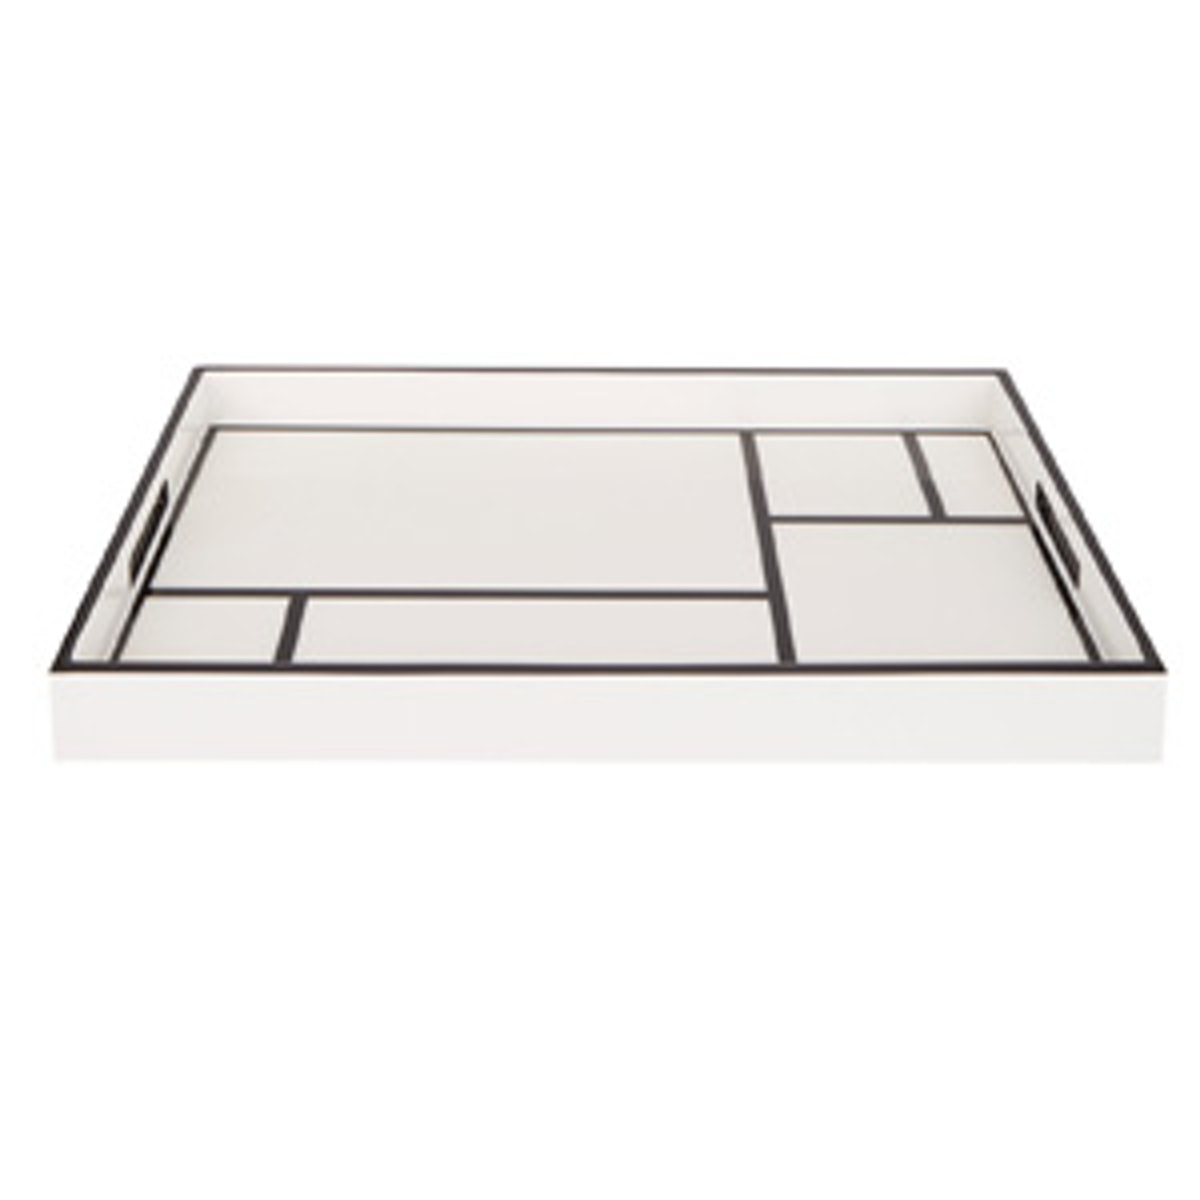 Lacquer Grid Breakfast Tray